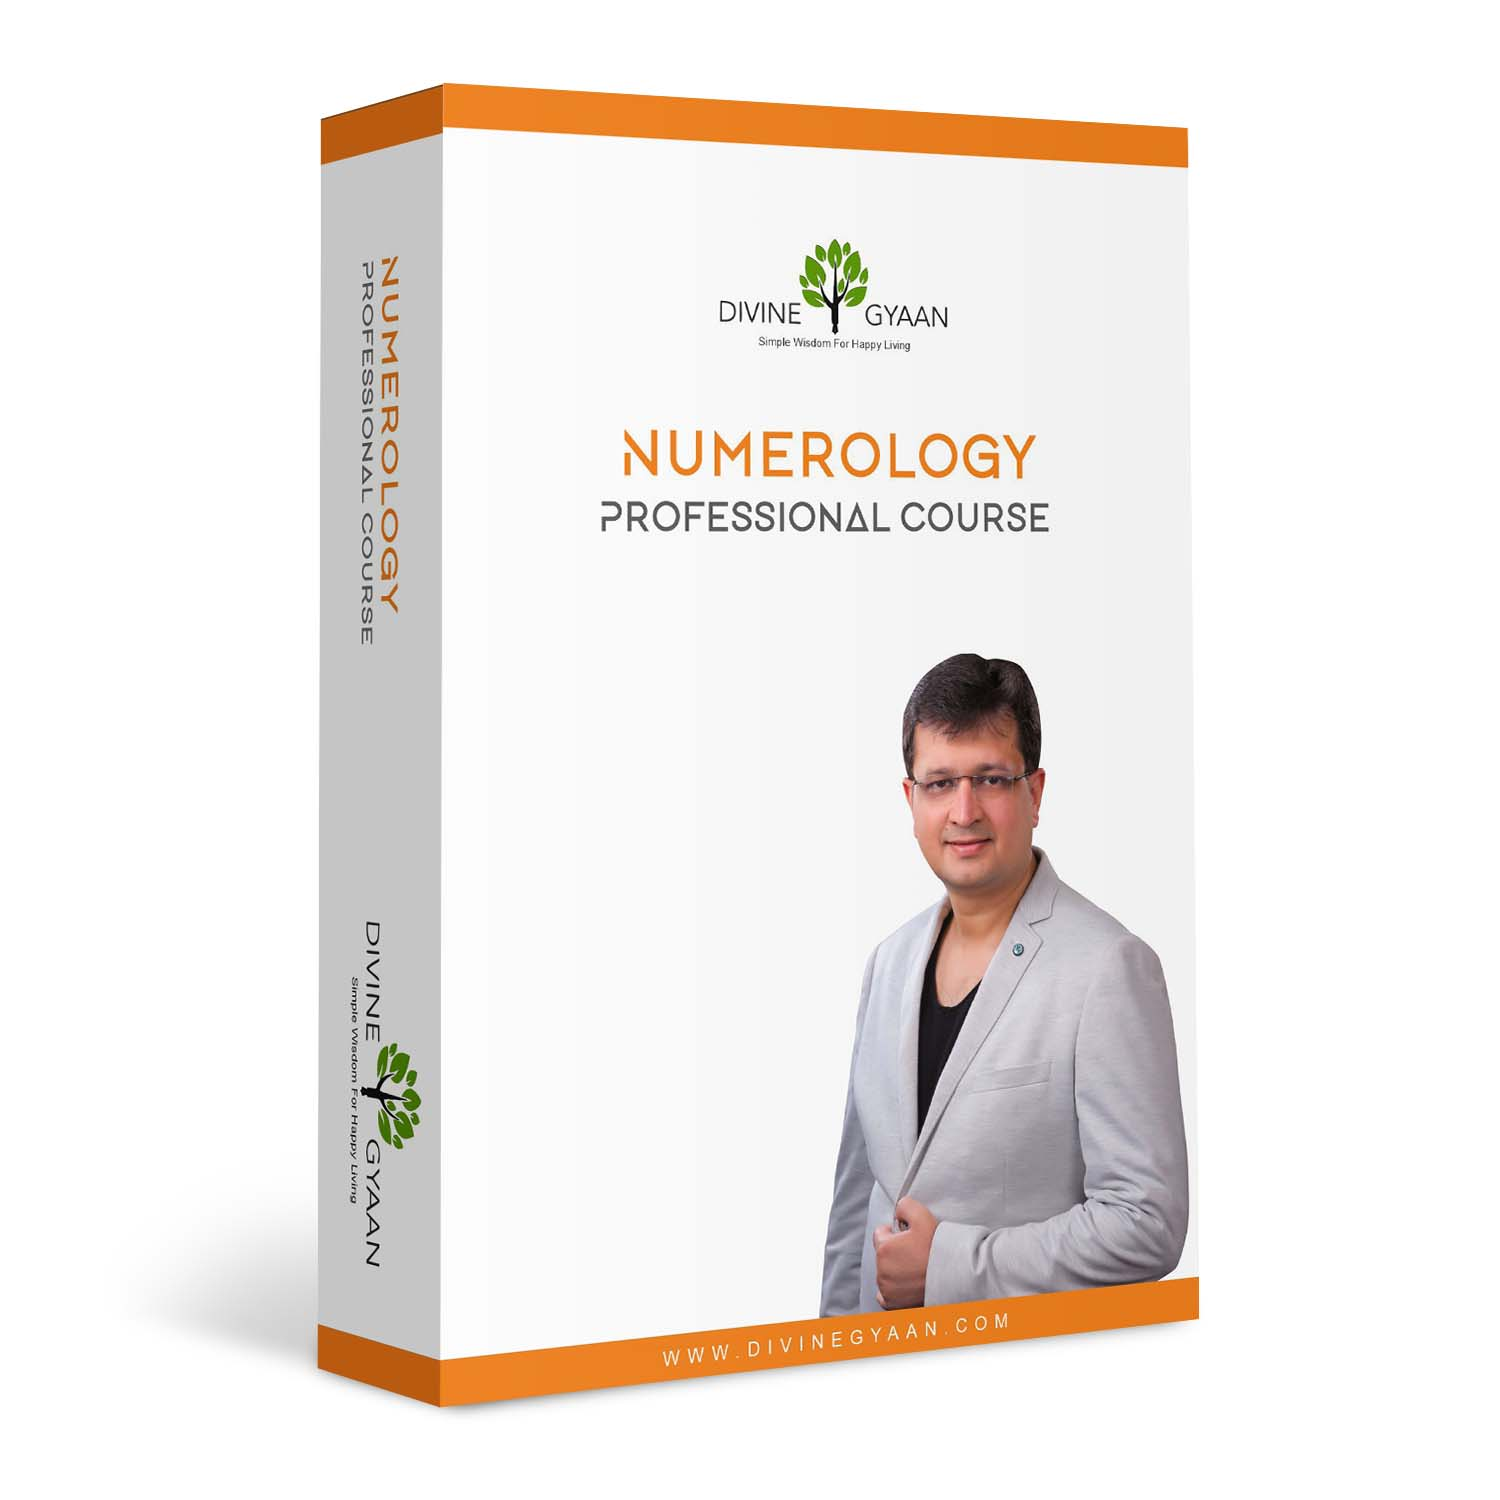 Numerology Professional Course